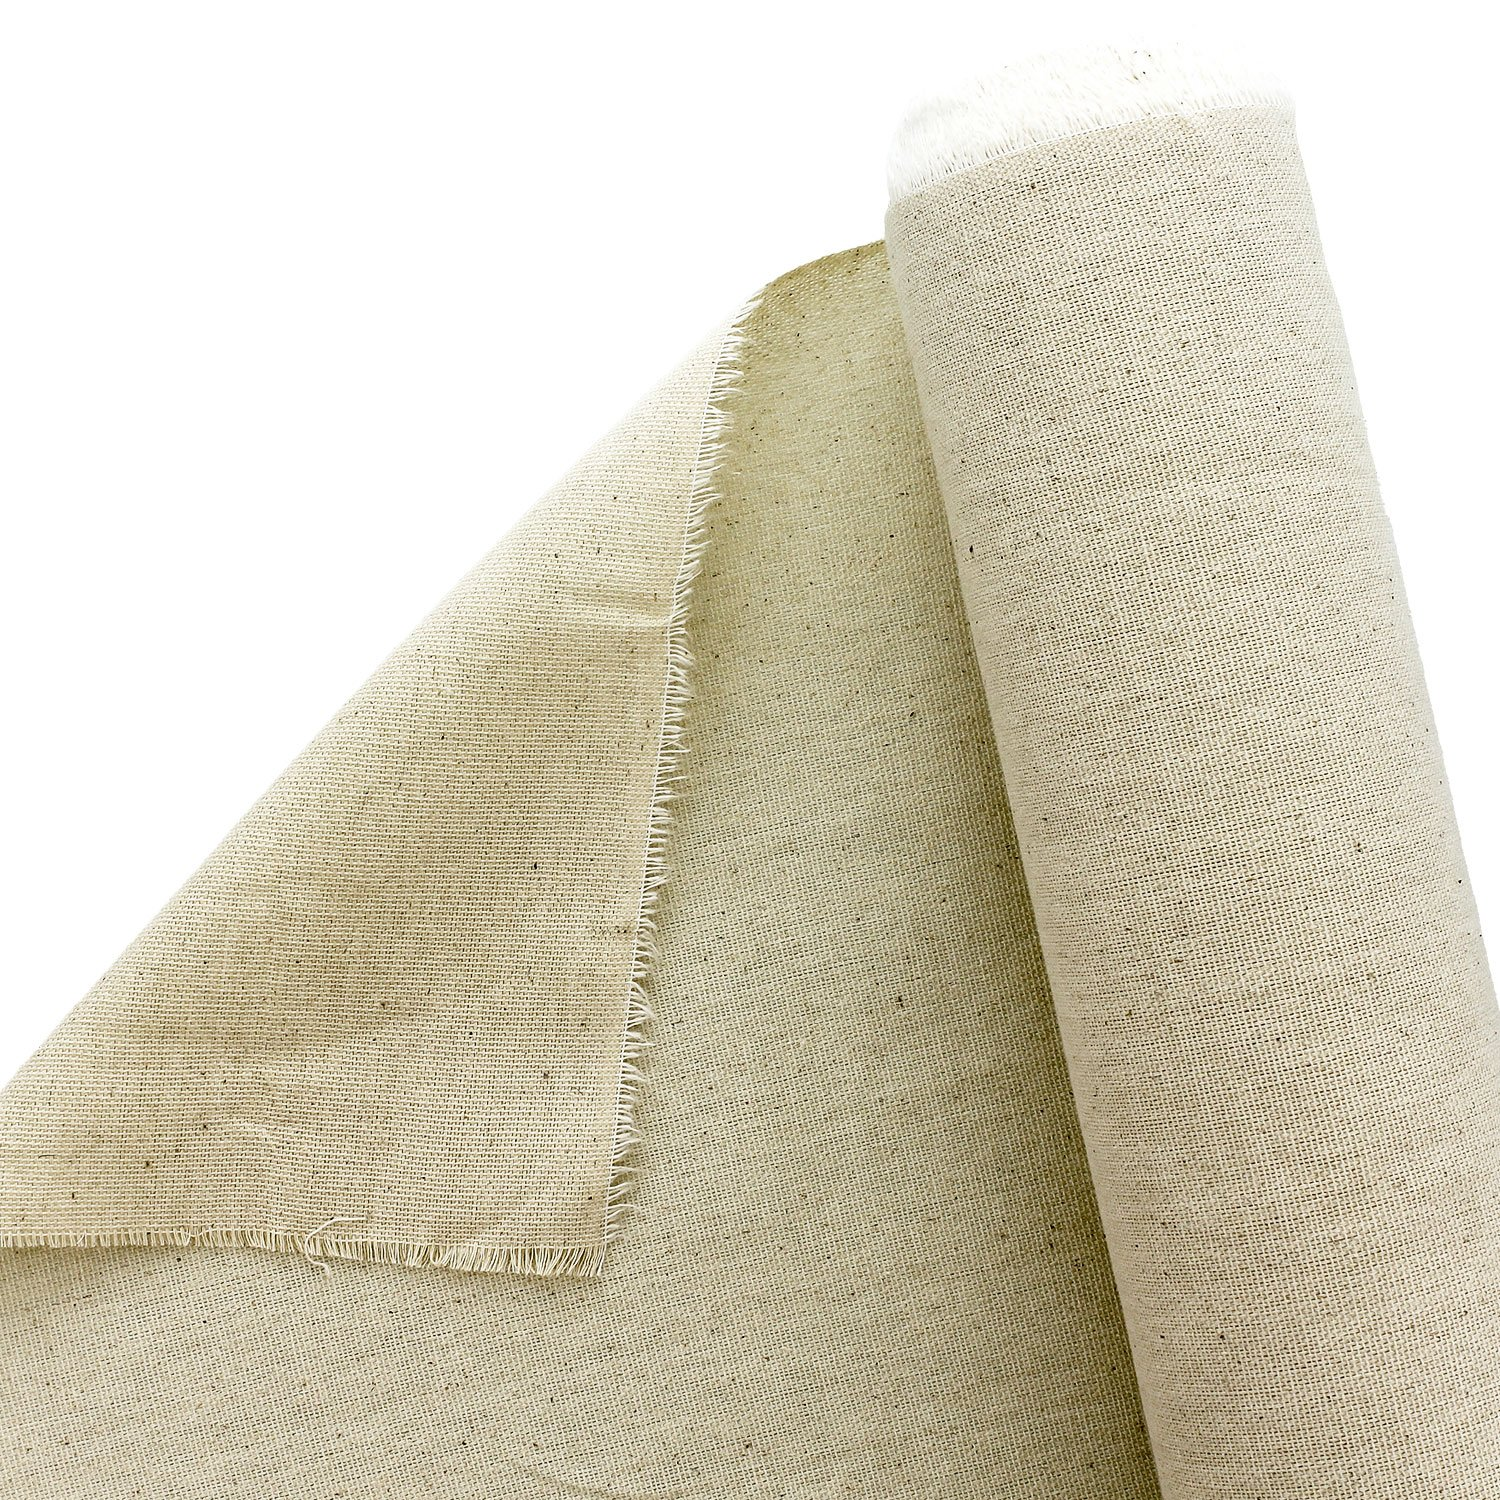 U.S. Art Supply 63'' Wide x 6 Yard Long Canvas Roll - 100% Cotton 7 Ounce Un-Primed Artist Painting by US Art Supply